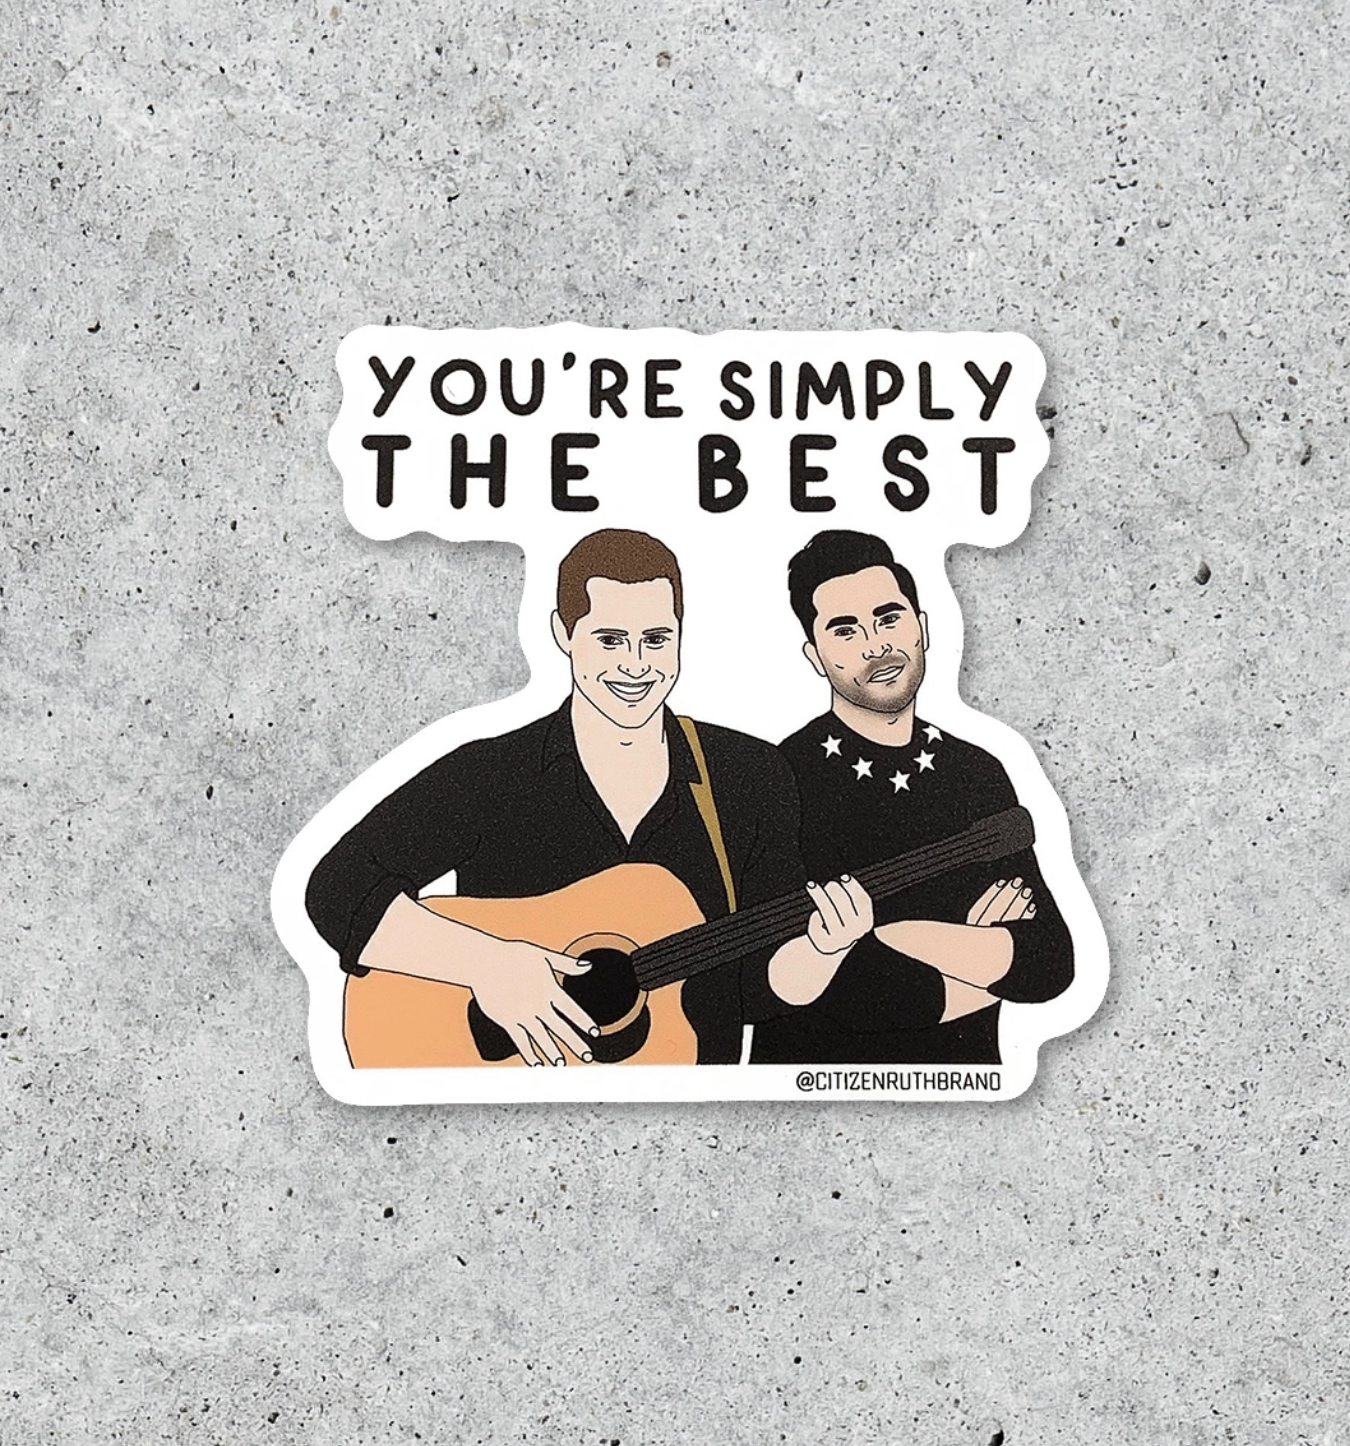 Citizen Ruth Simply The Best Schitt's Creek sticker